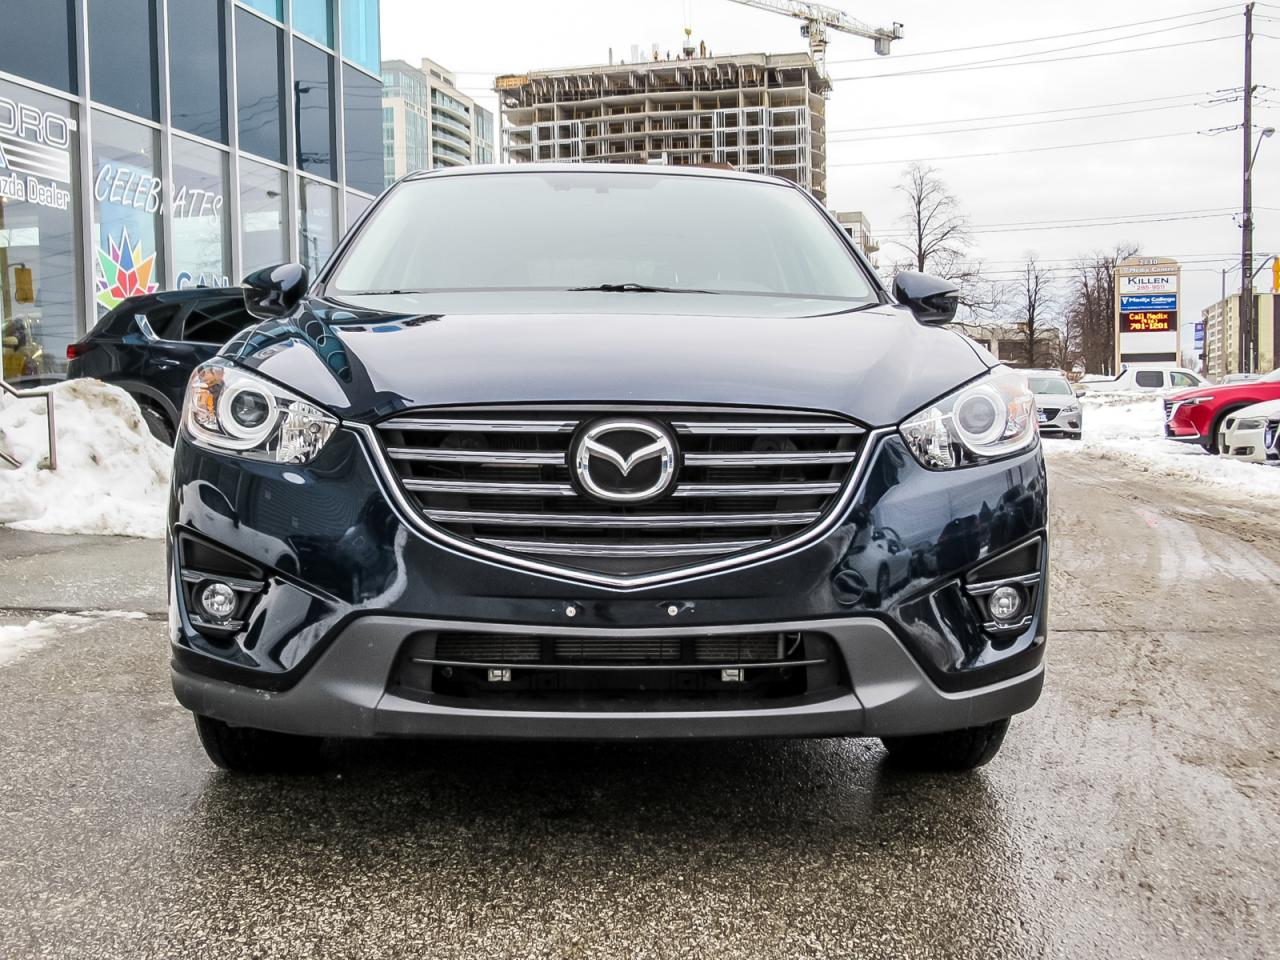 used 2016 mazda cx 5 gs awd mazda warranty until 2024 finance 0 blind spot monitoring rear. Black Bedroom Furniture Sets. Home Design Ideas